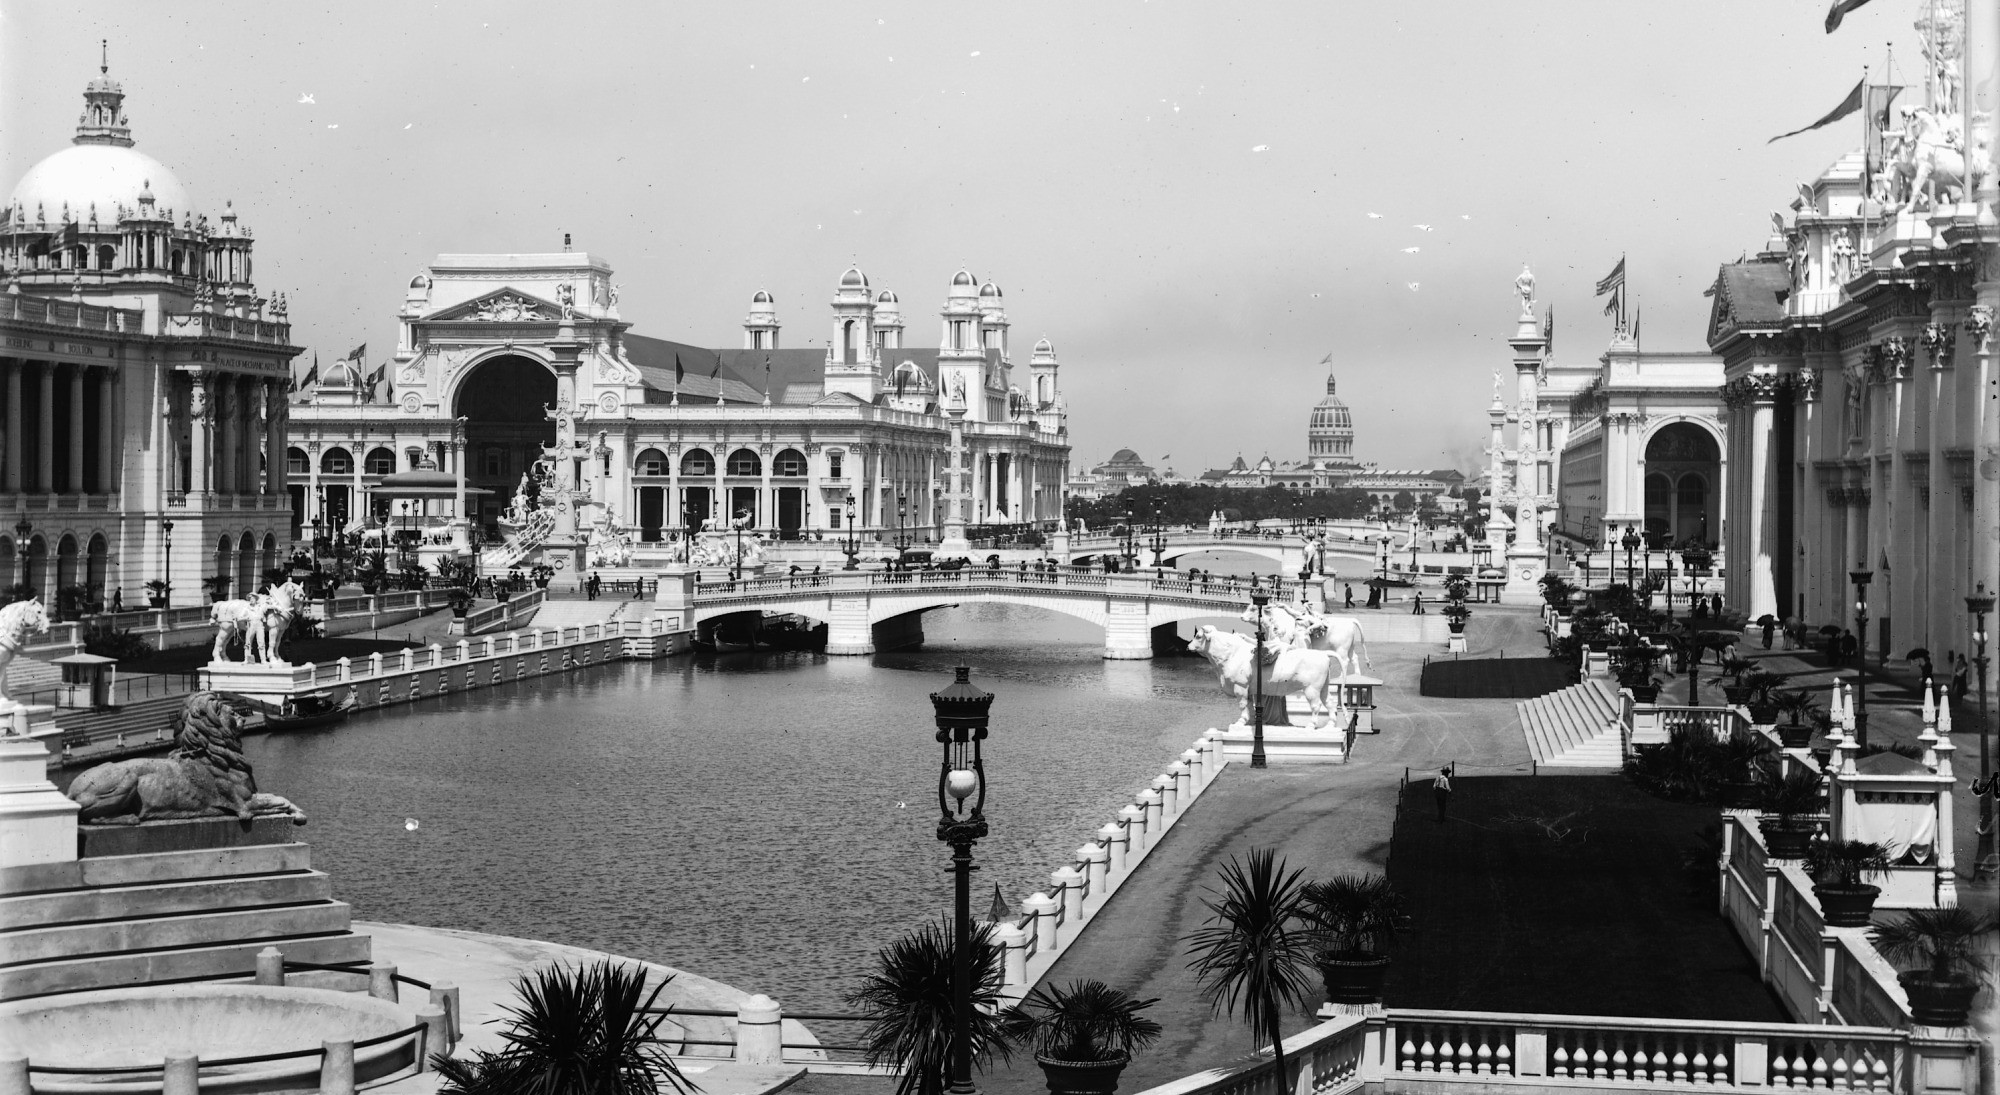 Black and white photograph of canal and buildings at the Chicago Columbian Exposition, 1893.